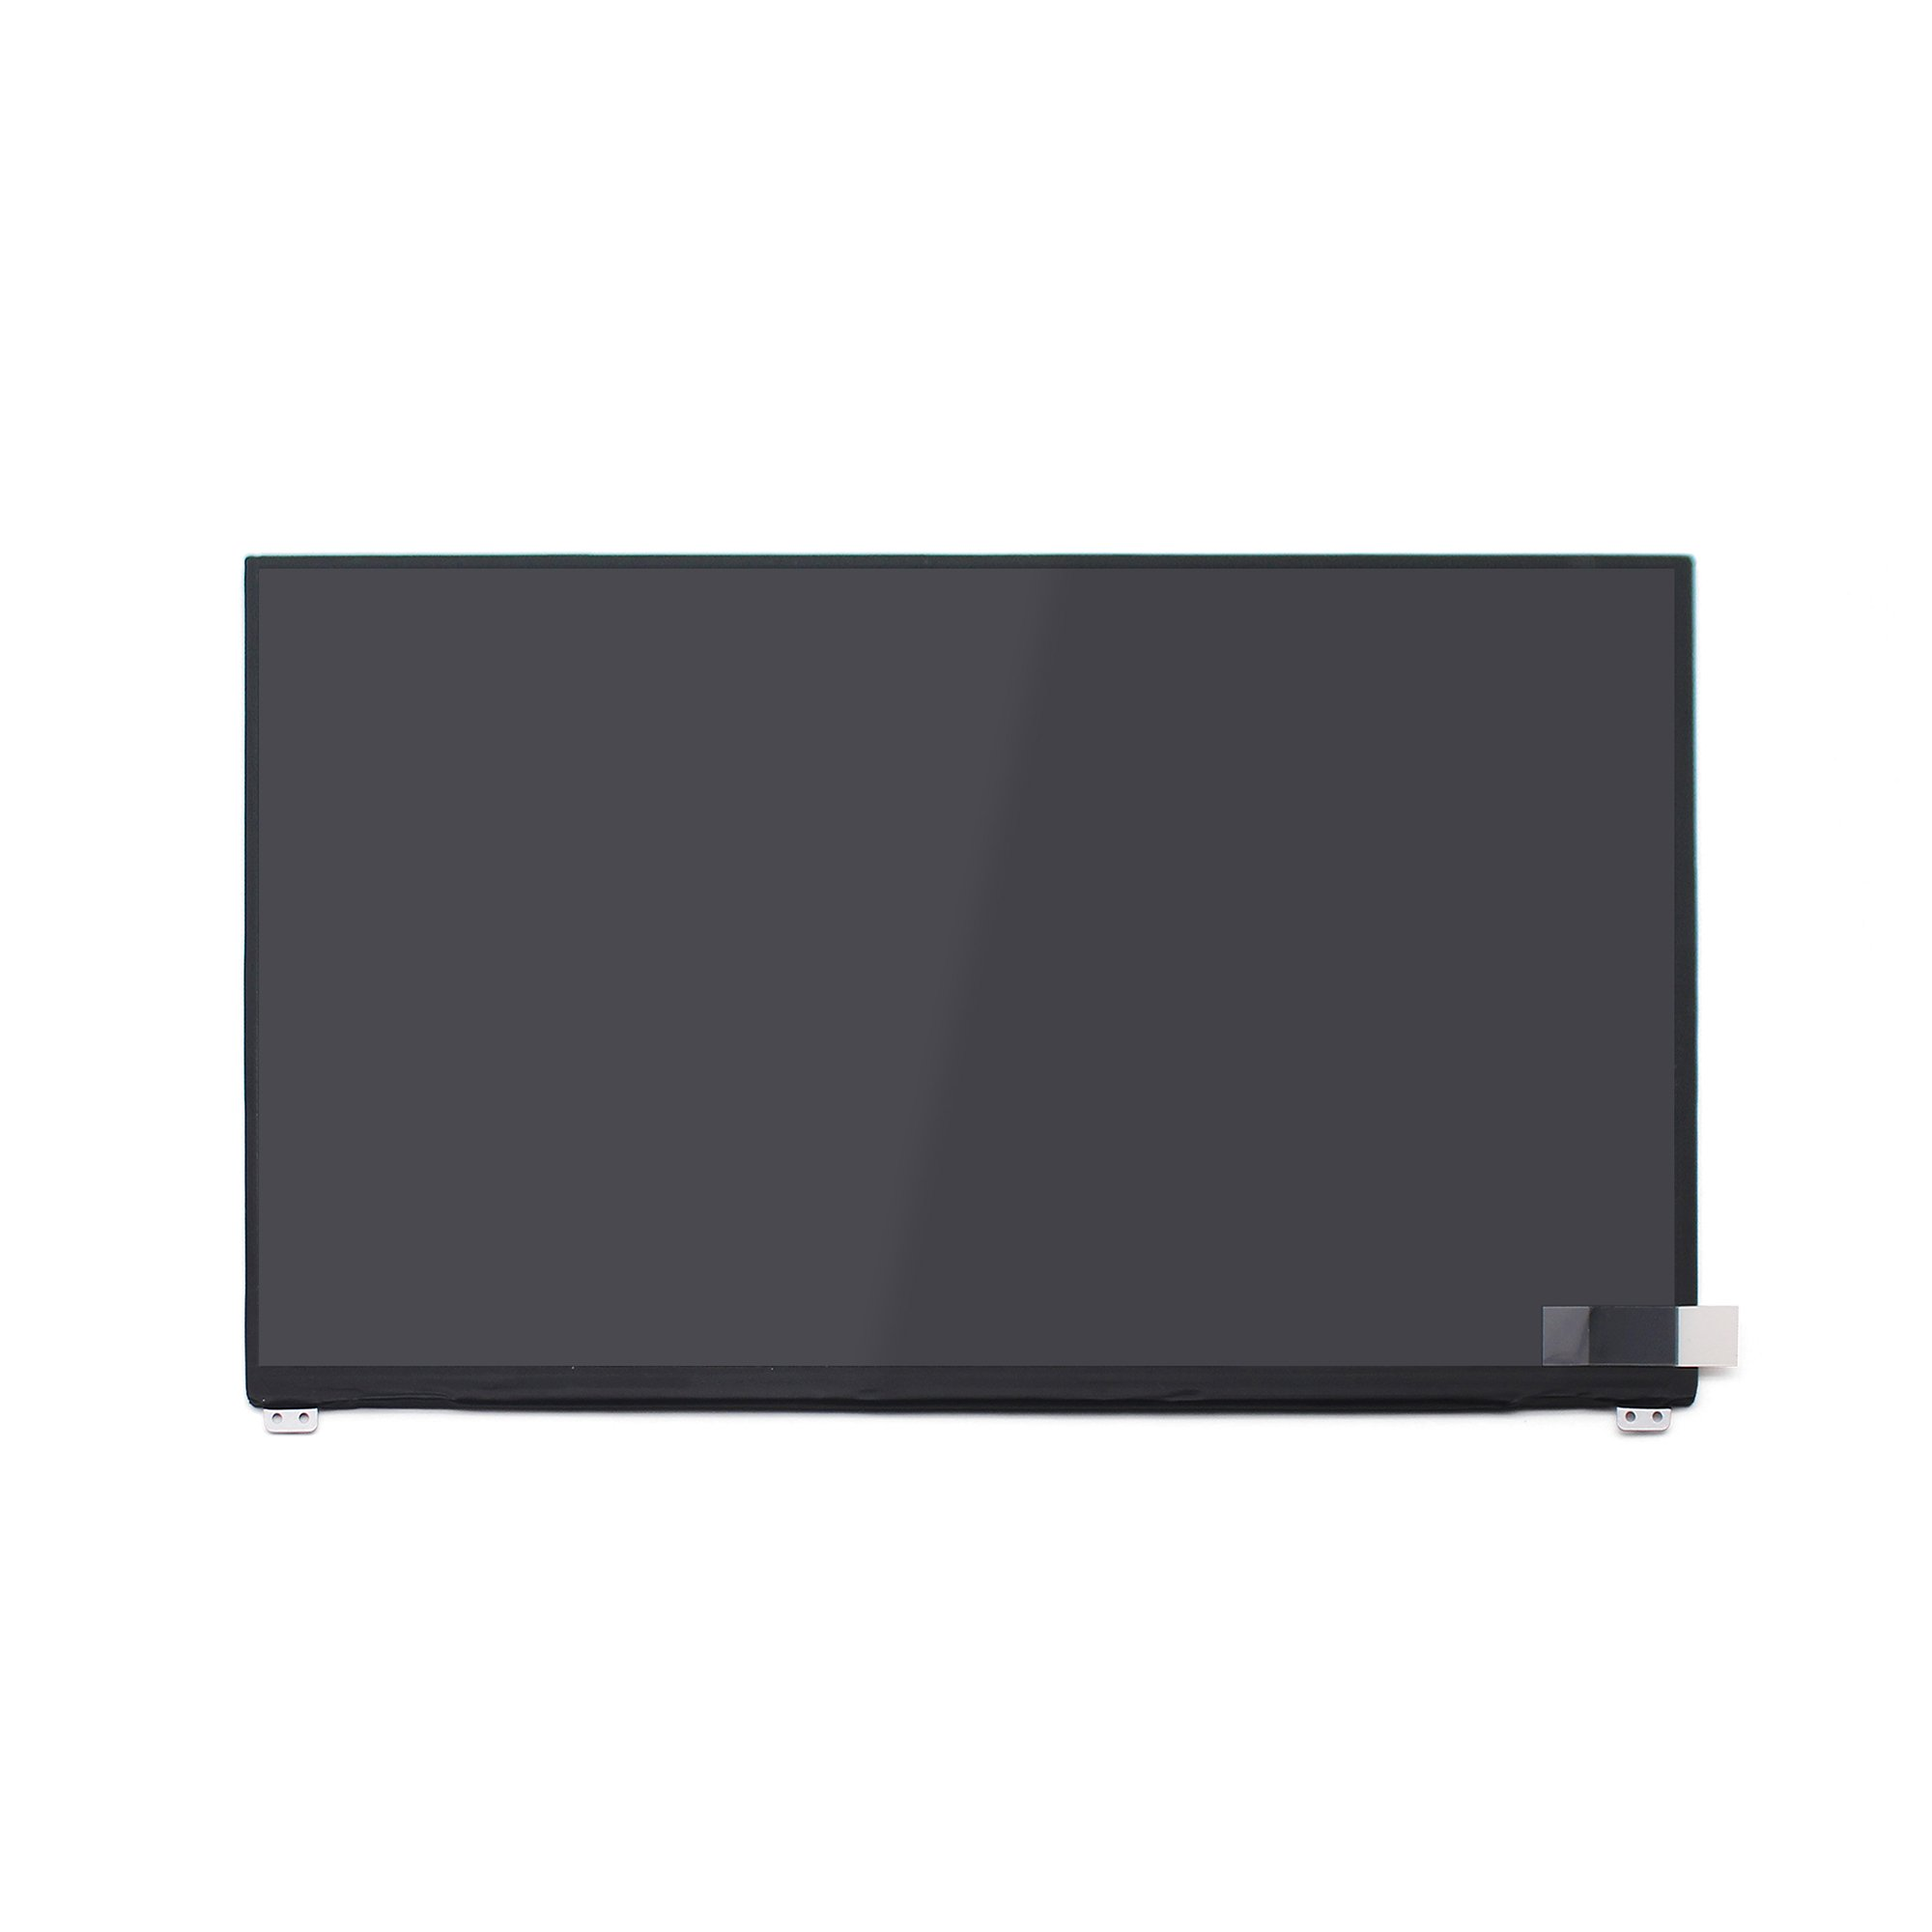 LCDOLED Compatible 14.0 inch FullHD 1920x1080 IPS LED LCD Display Screen Panel Replacement for Dell Latitude 14 7490 E7490 (Non-Touch)